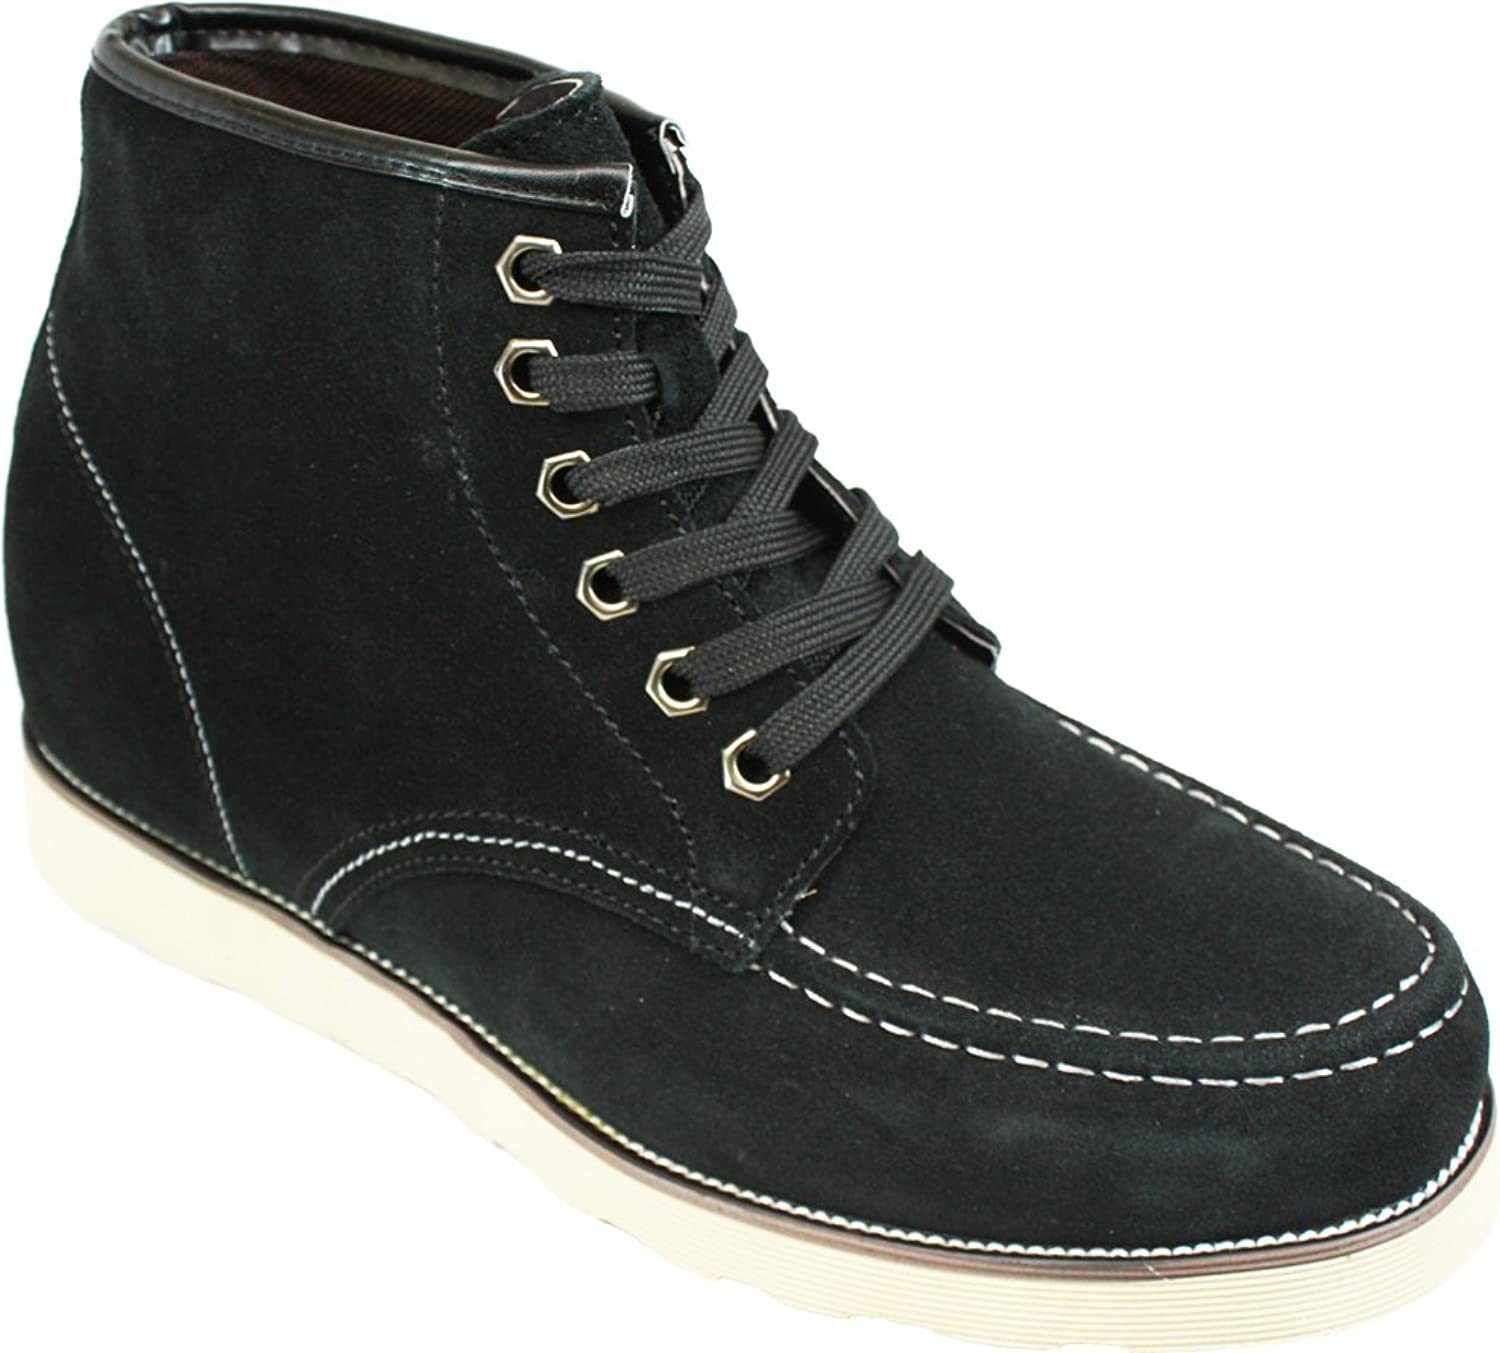 CALDEN - K228063-3 Inches Taller - Height Increasing Elevator shoes-Nubuck Black Lace-up